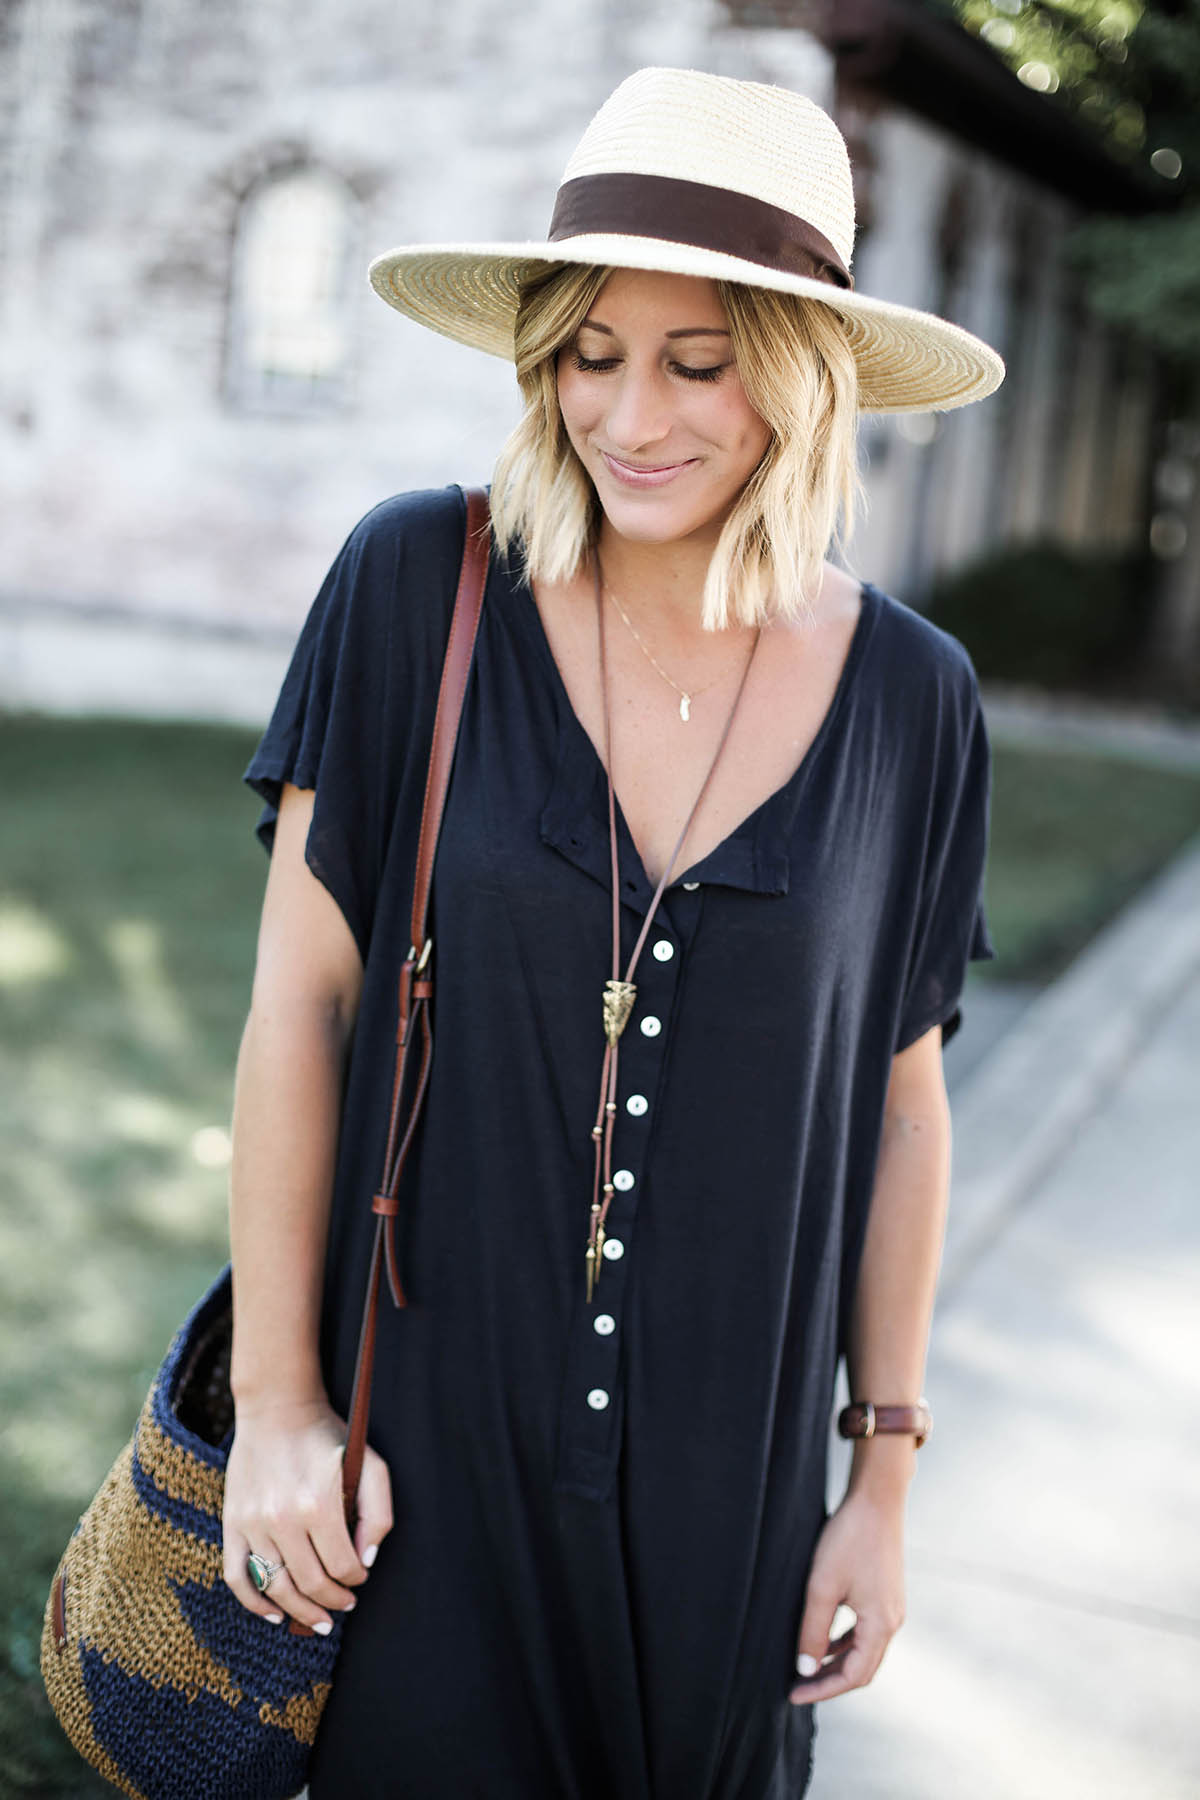 free people marrakesh oversized maxi dress outfit